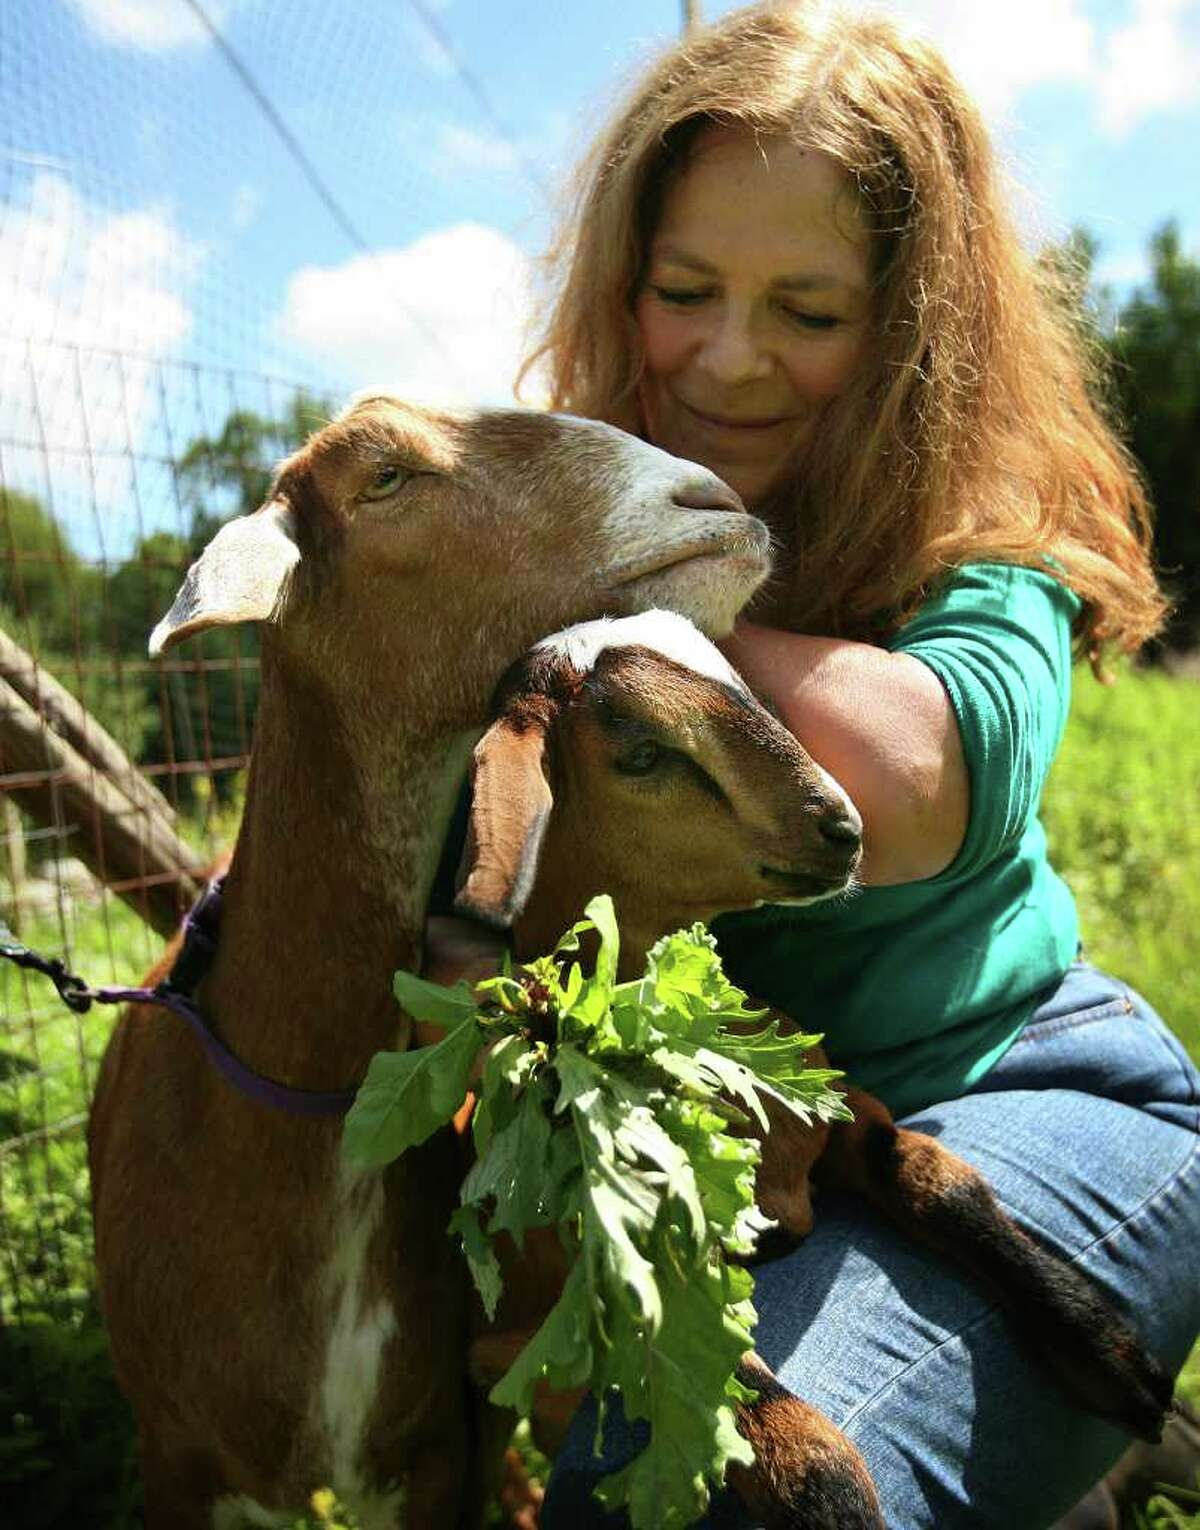 Nancy Burton of Redding with mother Cindy-Lu and baby Zig-zag, born this spring on her goat farm in Redding. Burton says that milk from her goats has tested positive for radioactivity, which she surmises is from the Indian Point nuclear plant in nearby New York state.